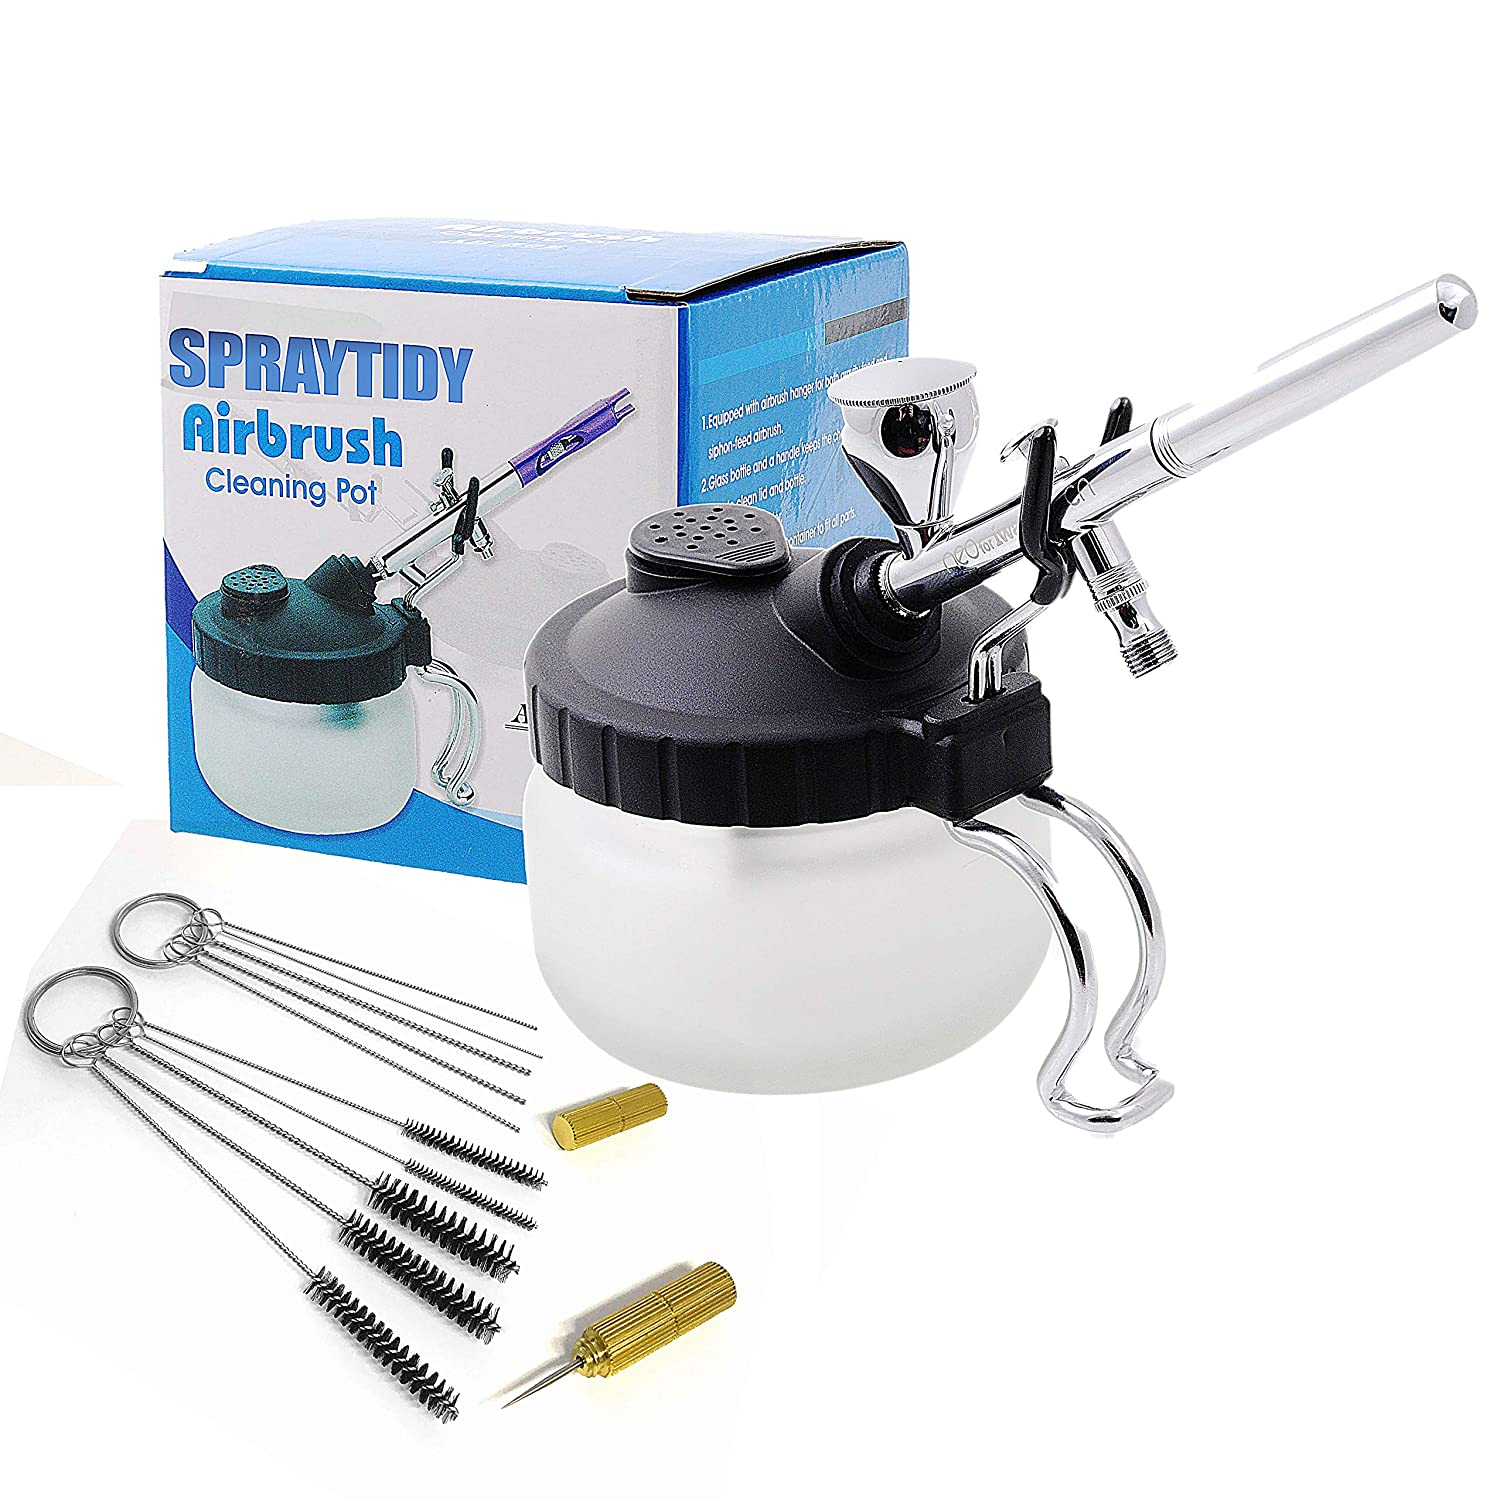 4df584e79086 Spraytidy Professional 3 in 1 Airbrush Cleaning Station | Full kit with  Accessories & Free cleaner Brushes | Perfect for Tamiya & Airfix models &  ...